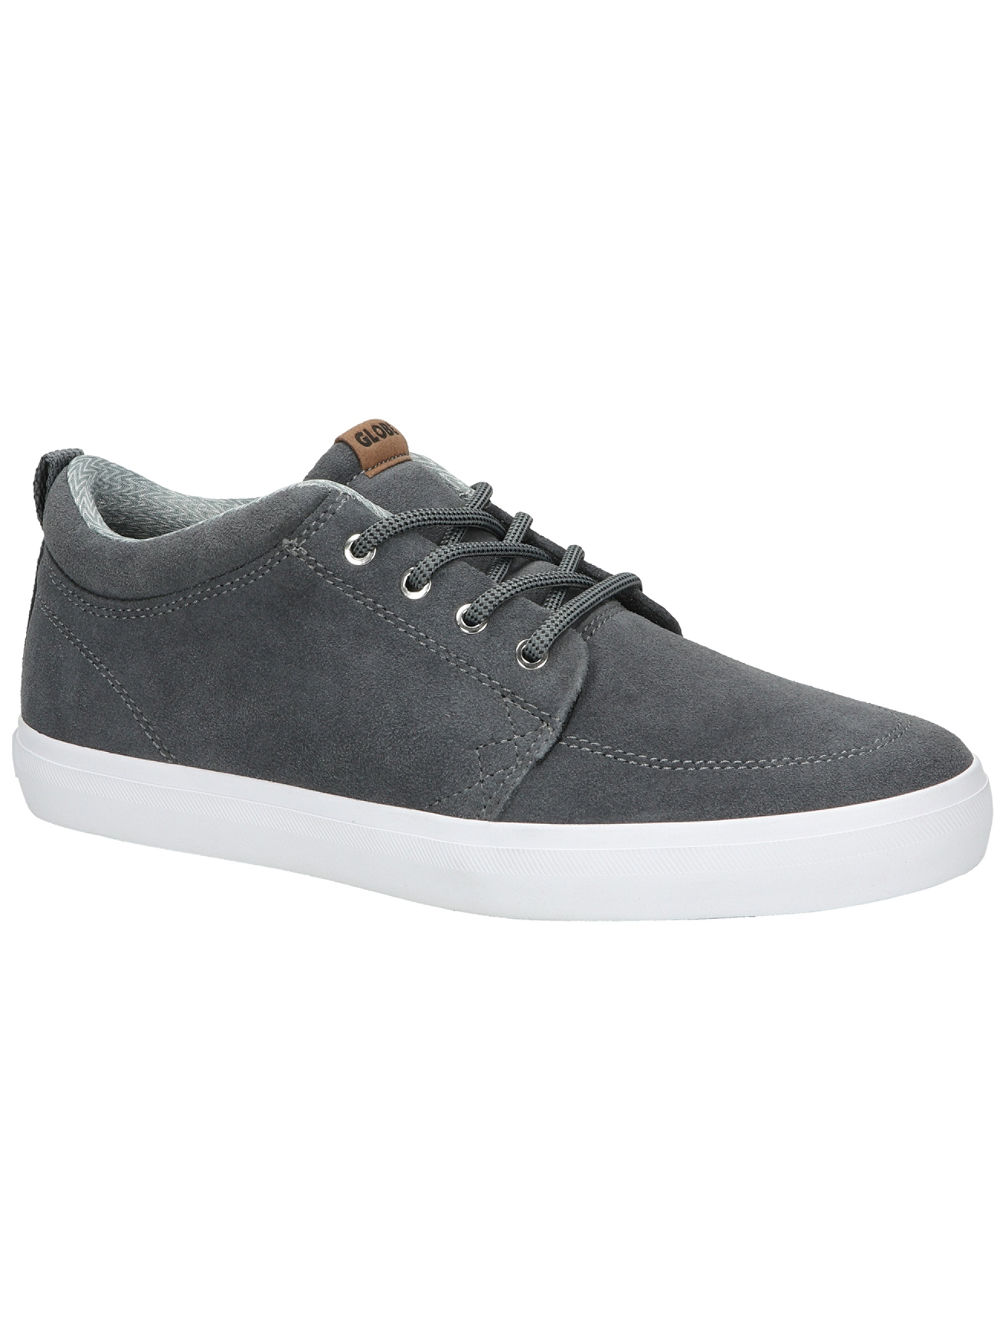 Gs Chukka Sneakers